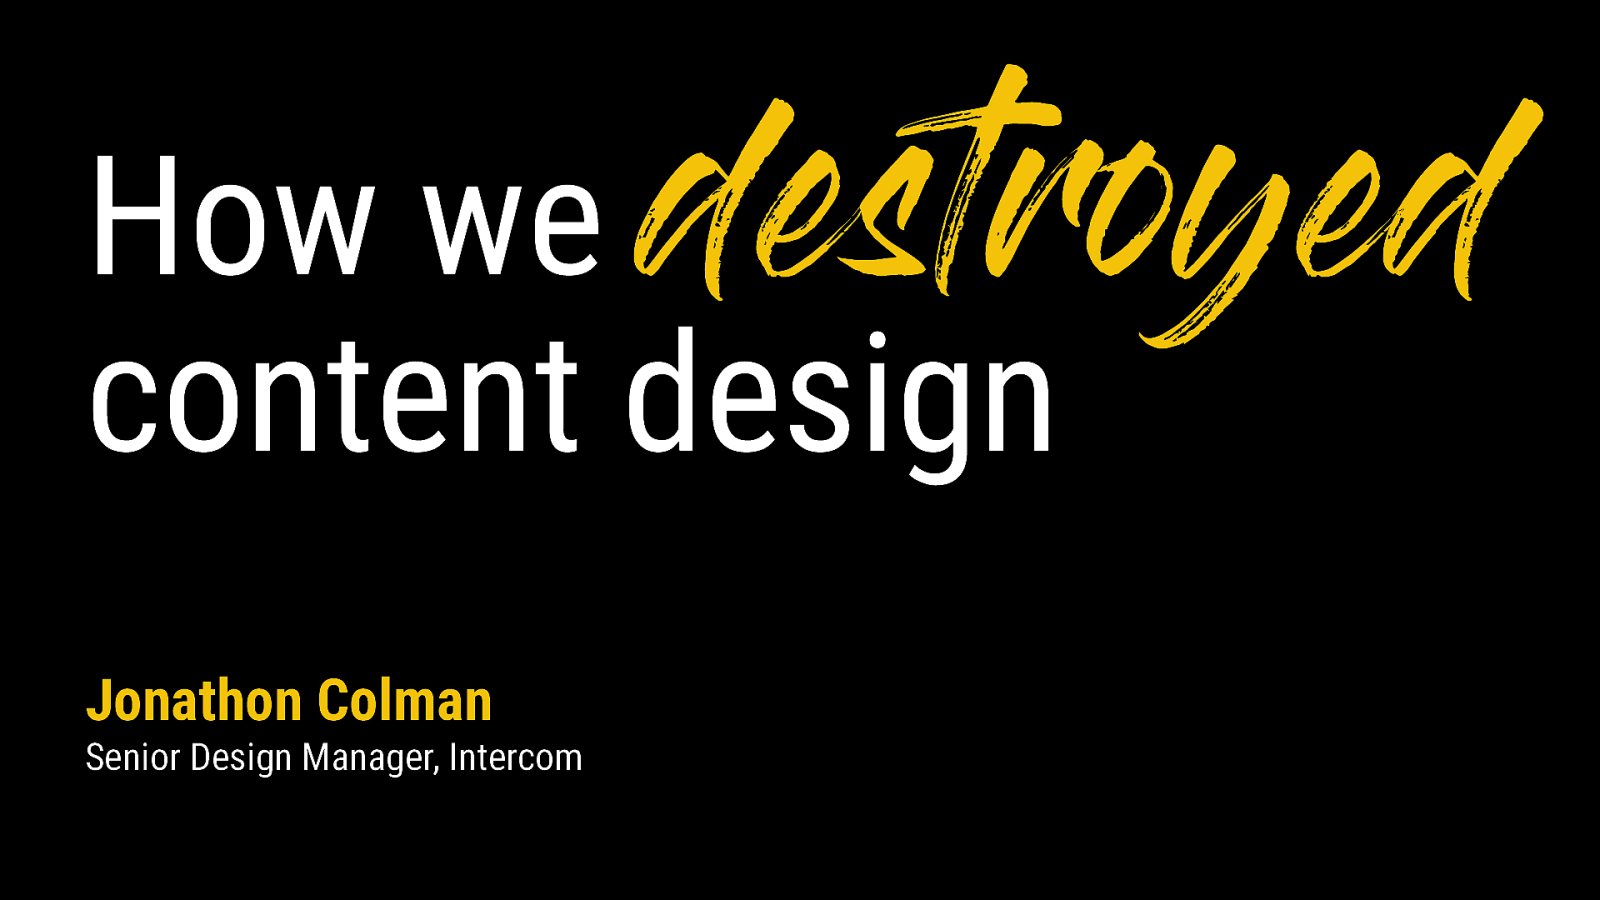 How we destroyed content design